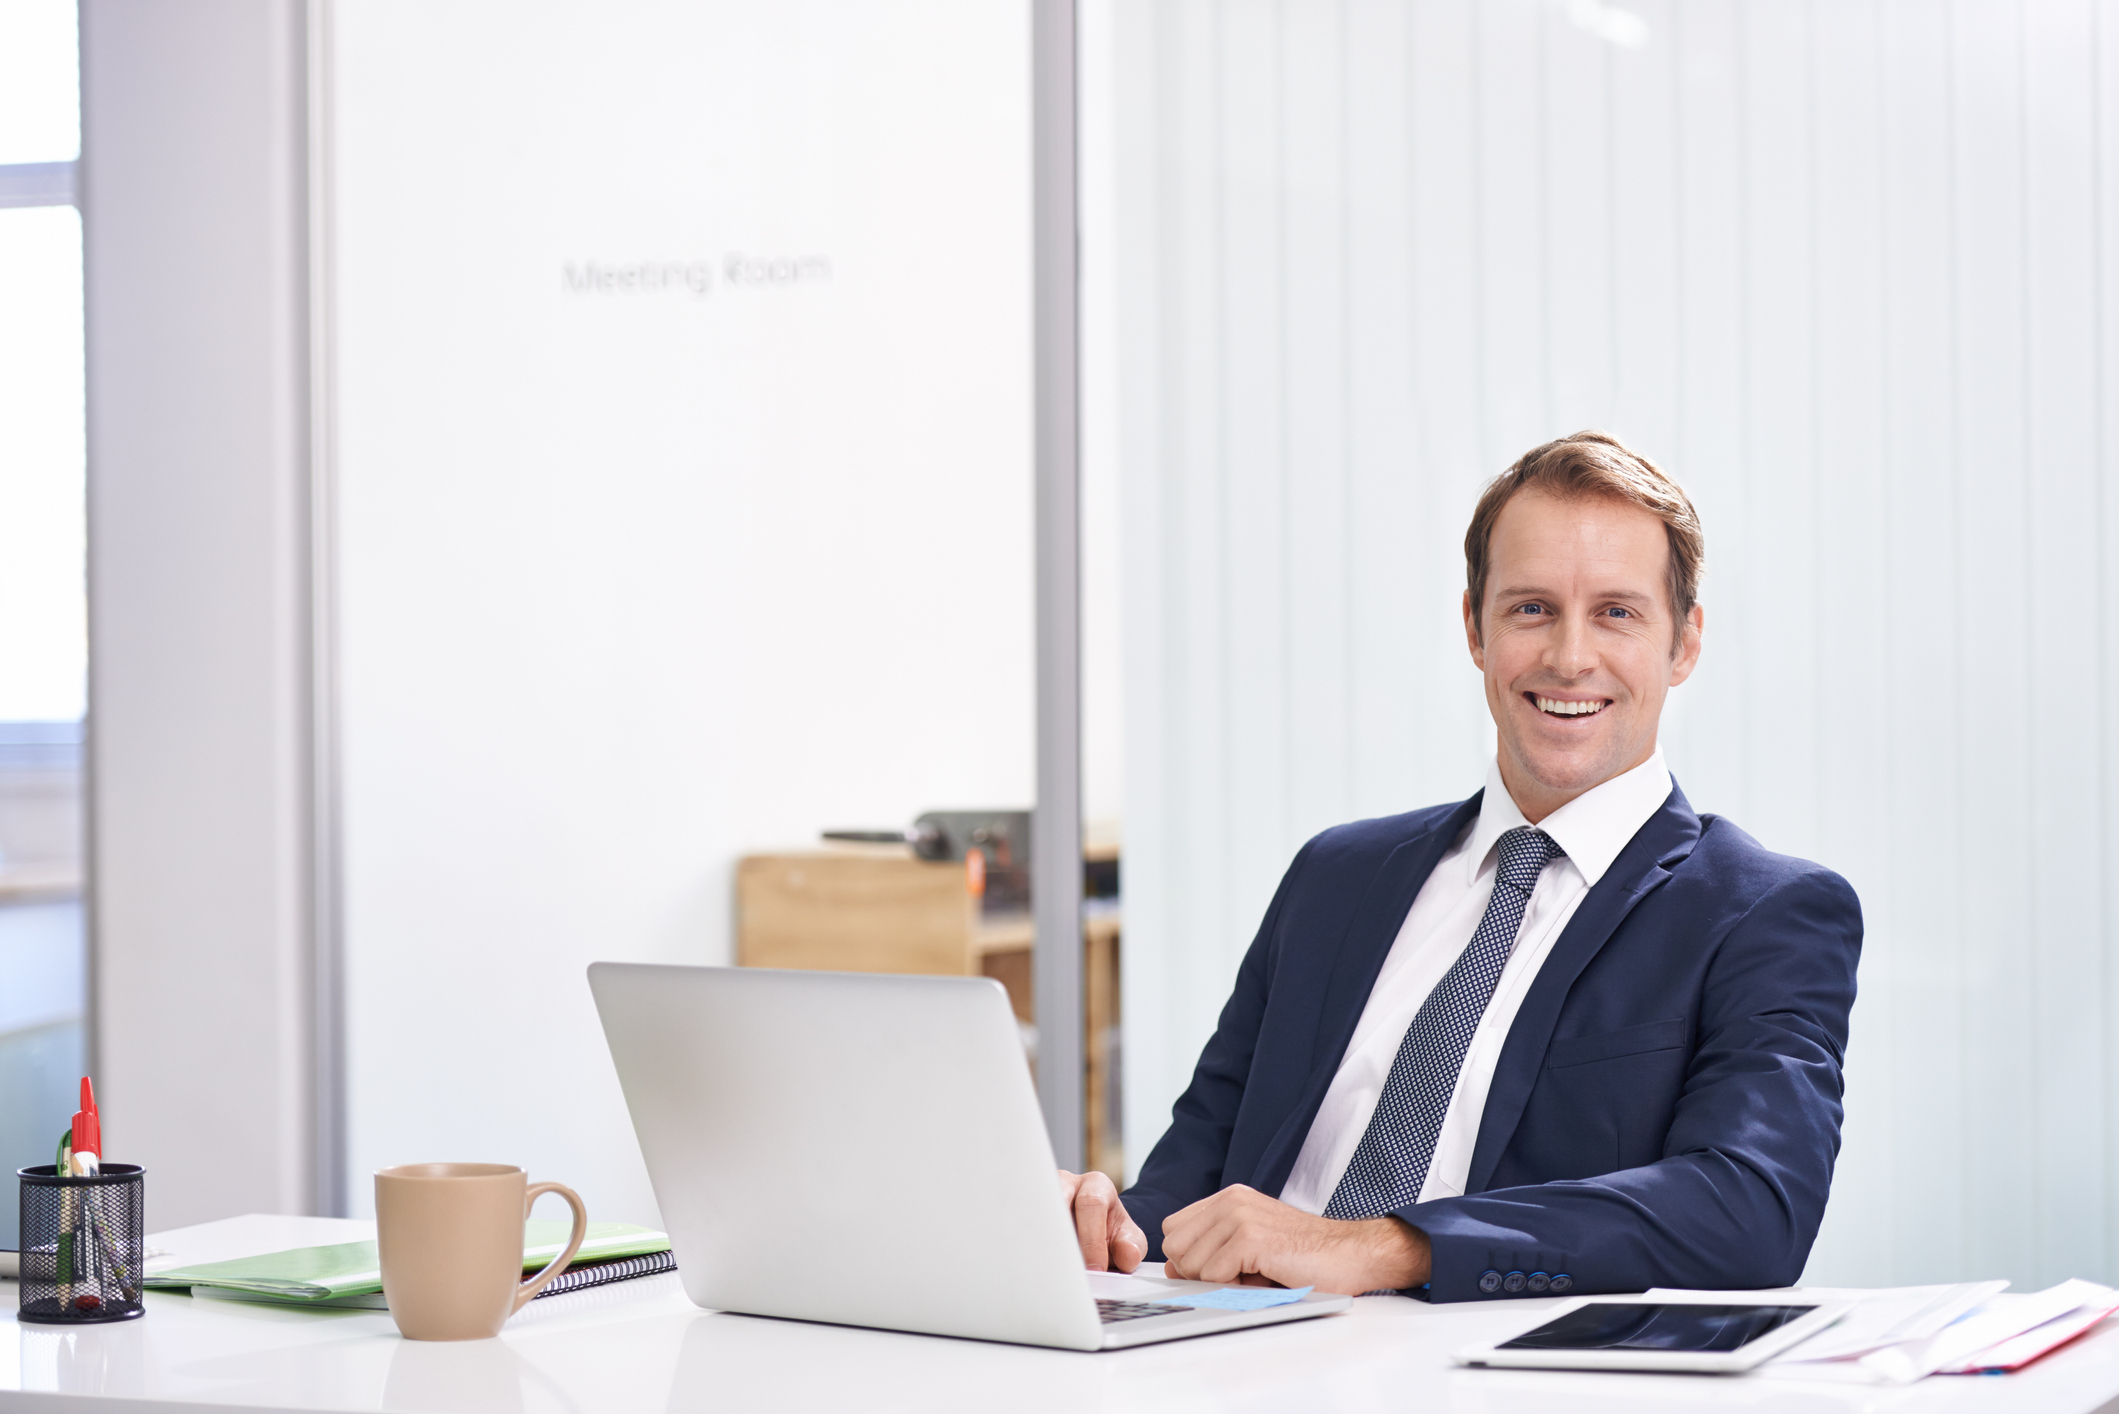 financial advisor sitting at desk in front of open laptop using digital marketing to get new clients